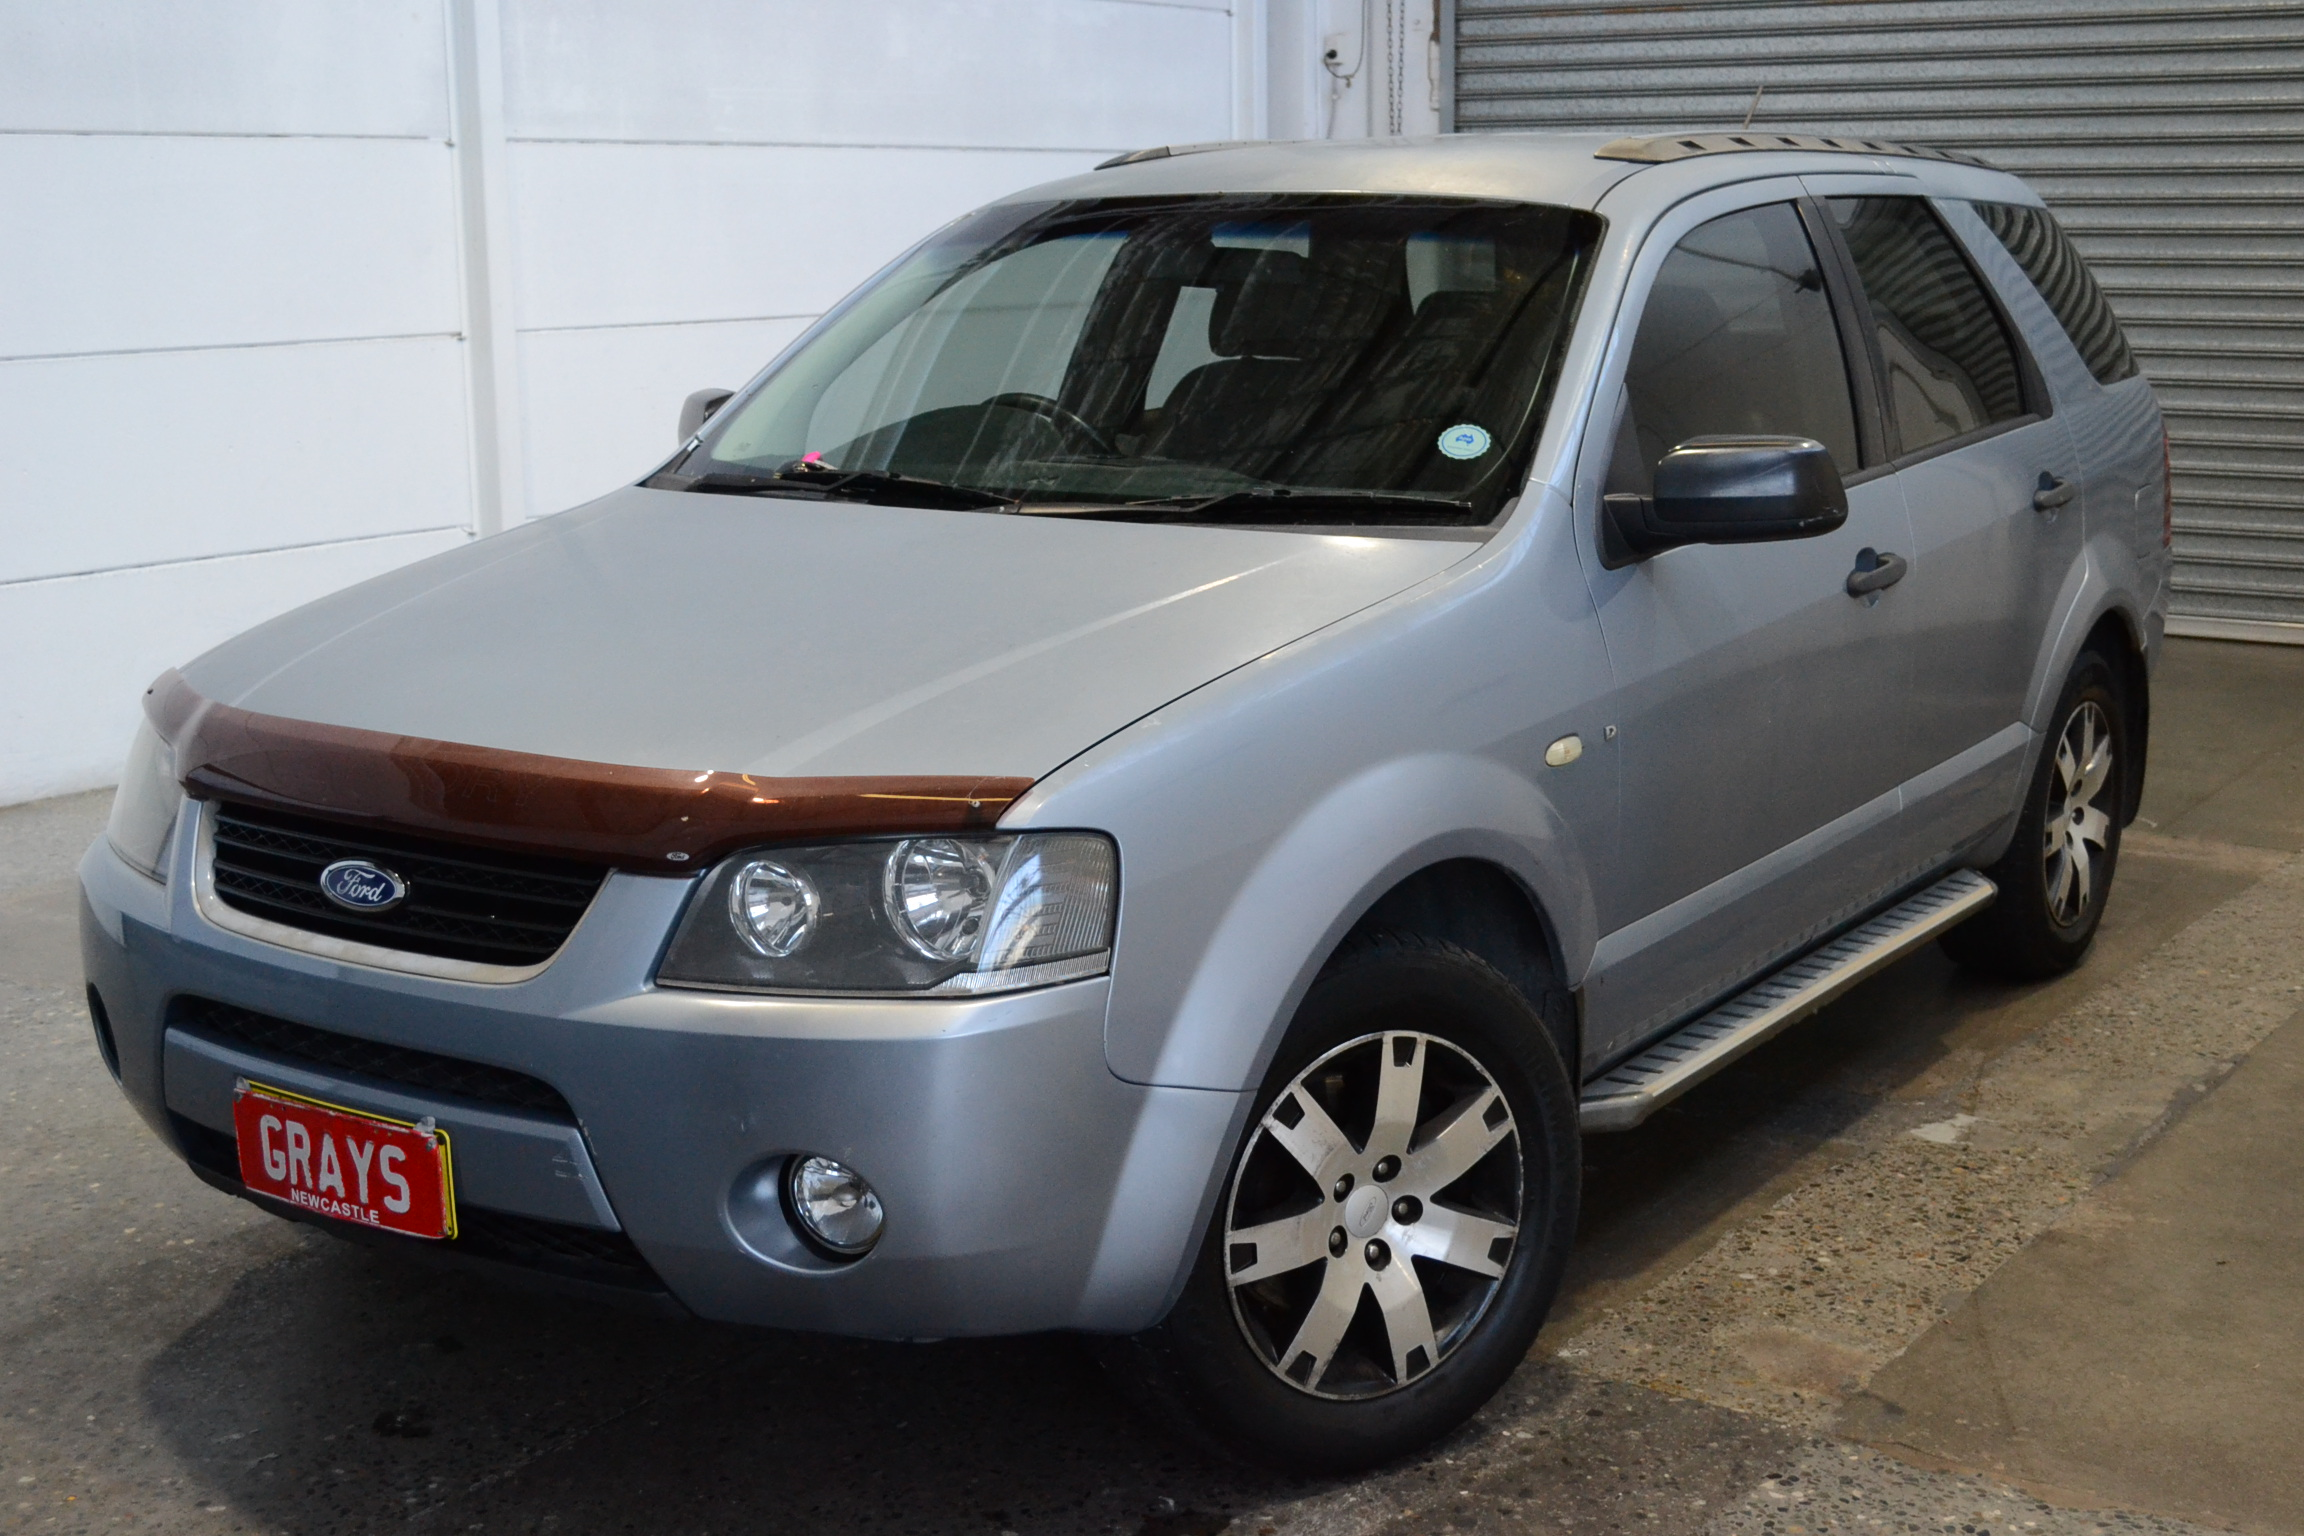 2007 Ford Territory TX (4x4) SY Automatic 7 Seats Wagon